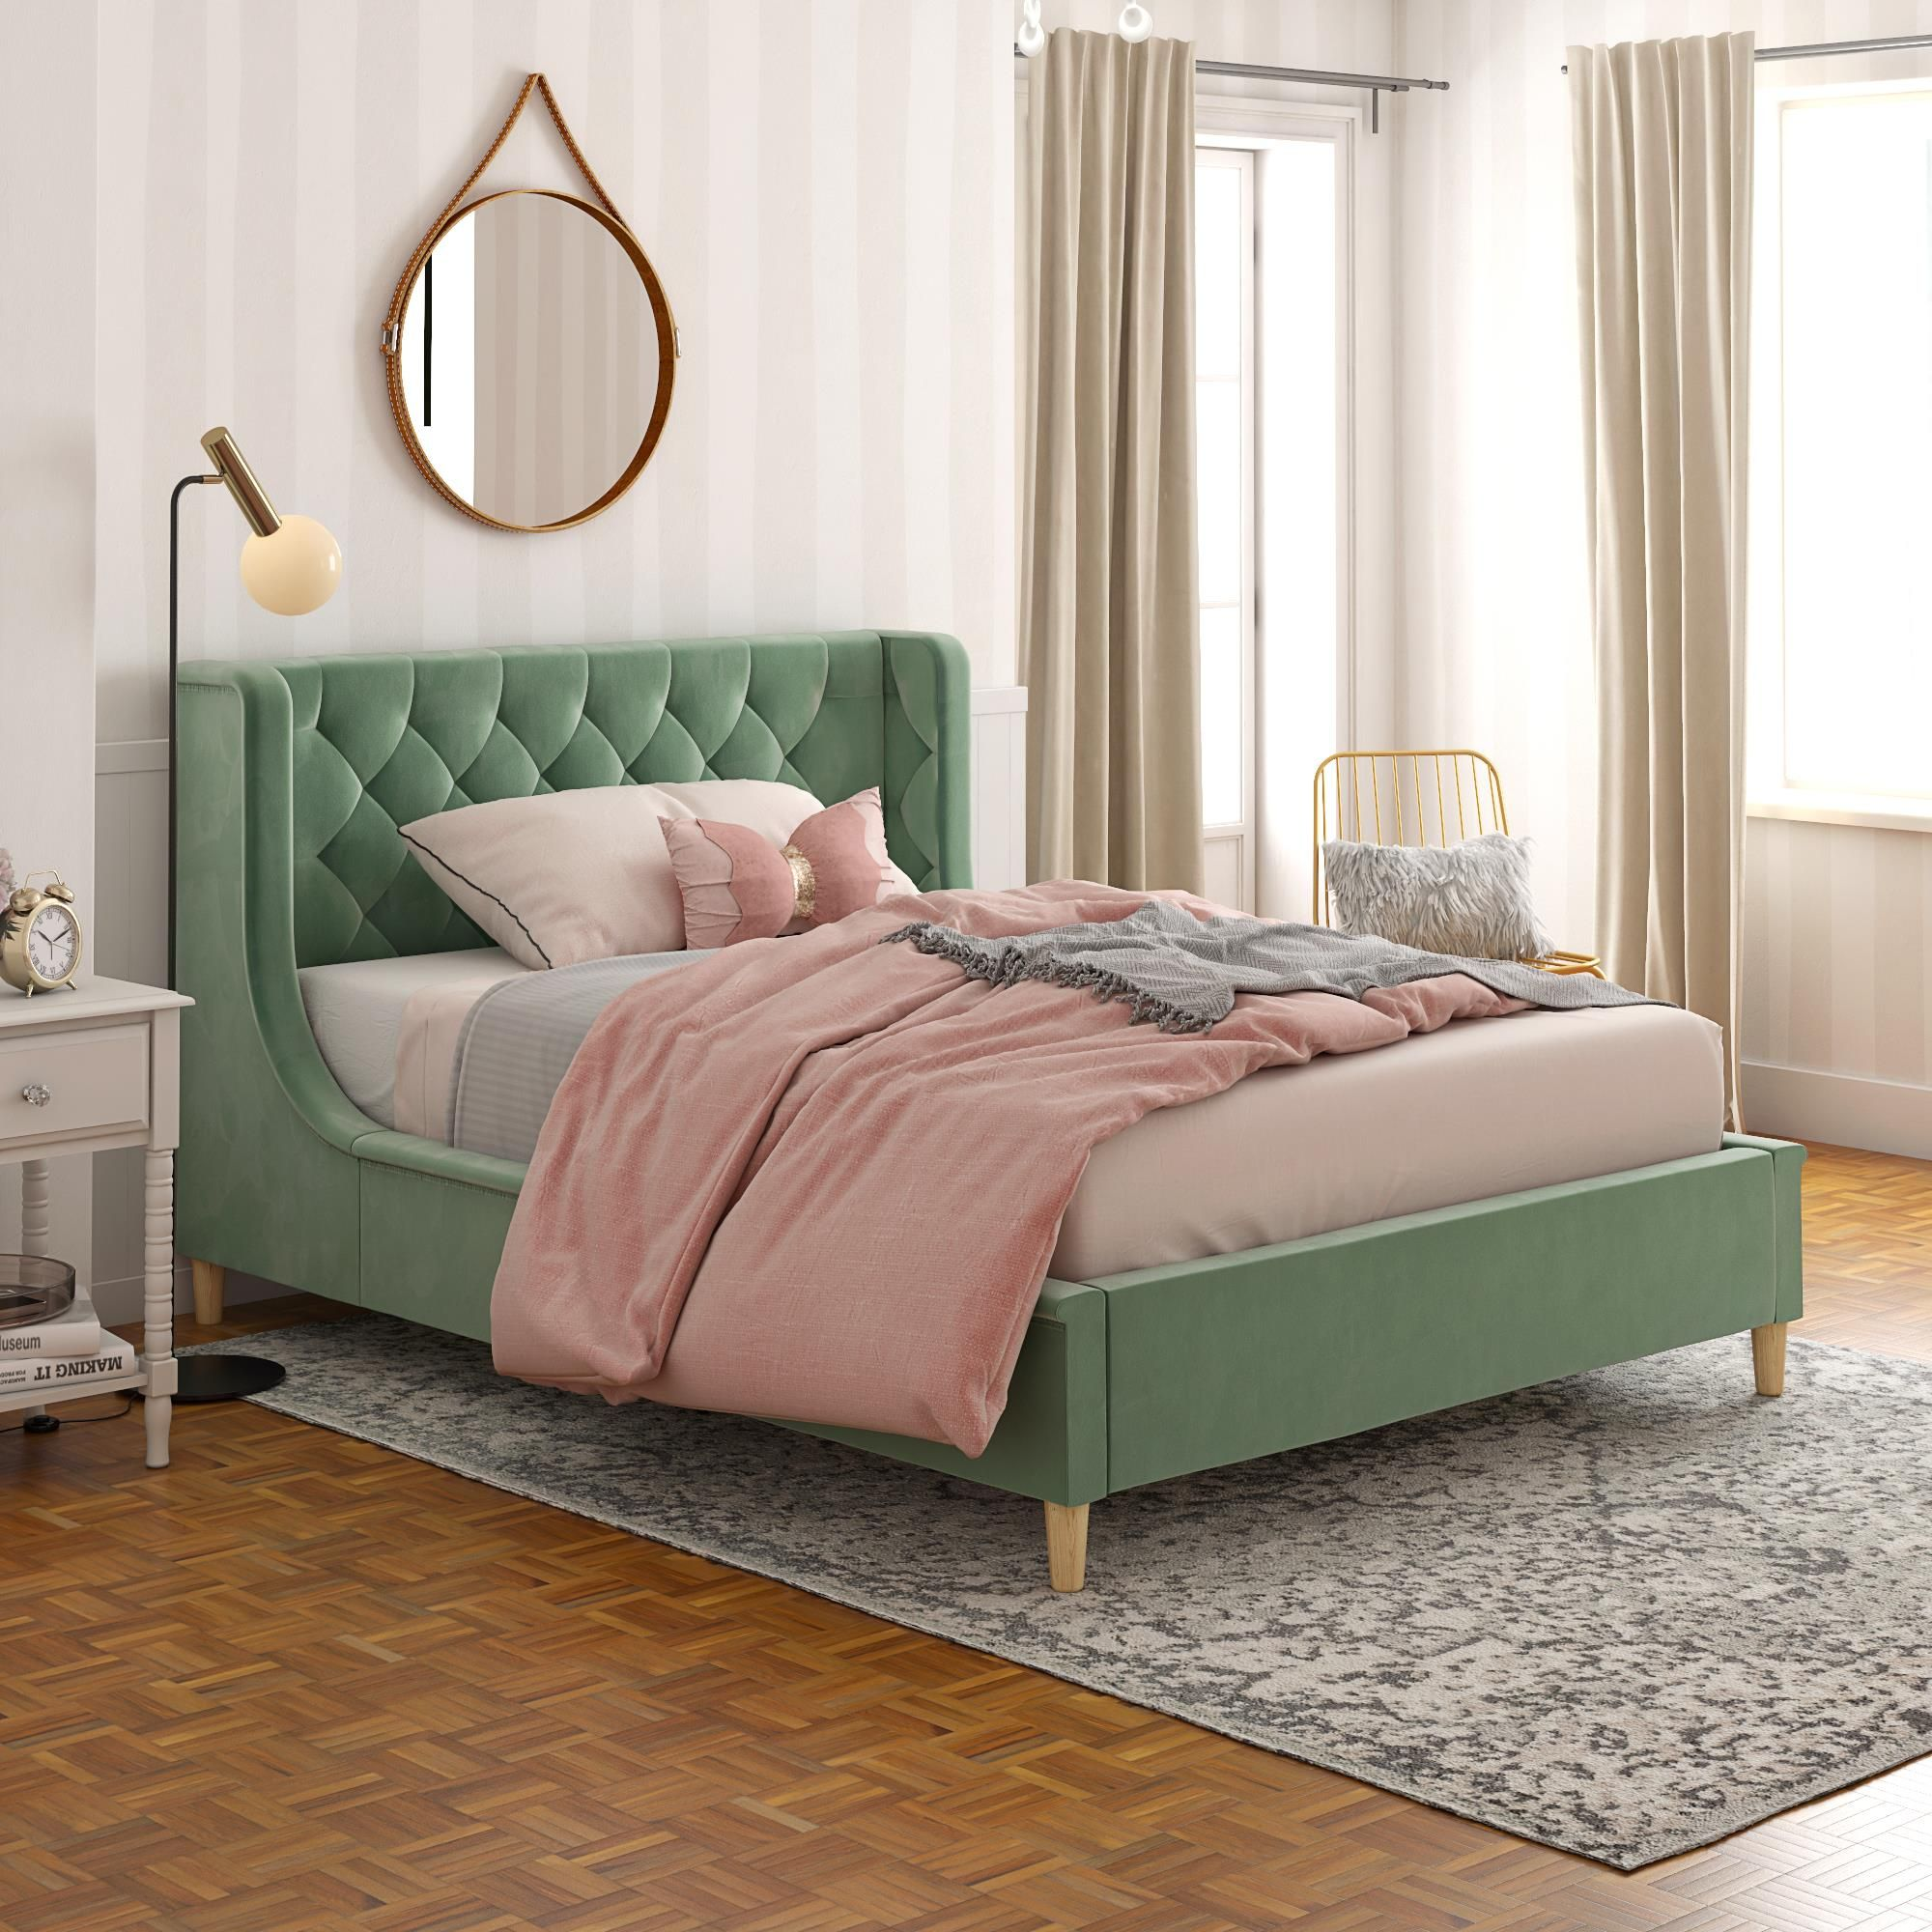 Home Full Size Upholstered Bed Full Platform Bed Upholstered Beds